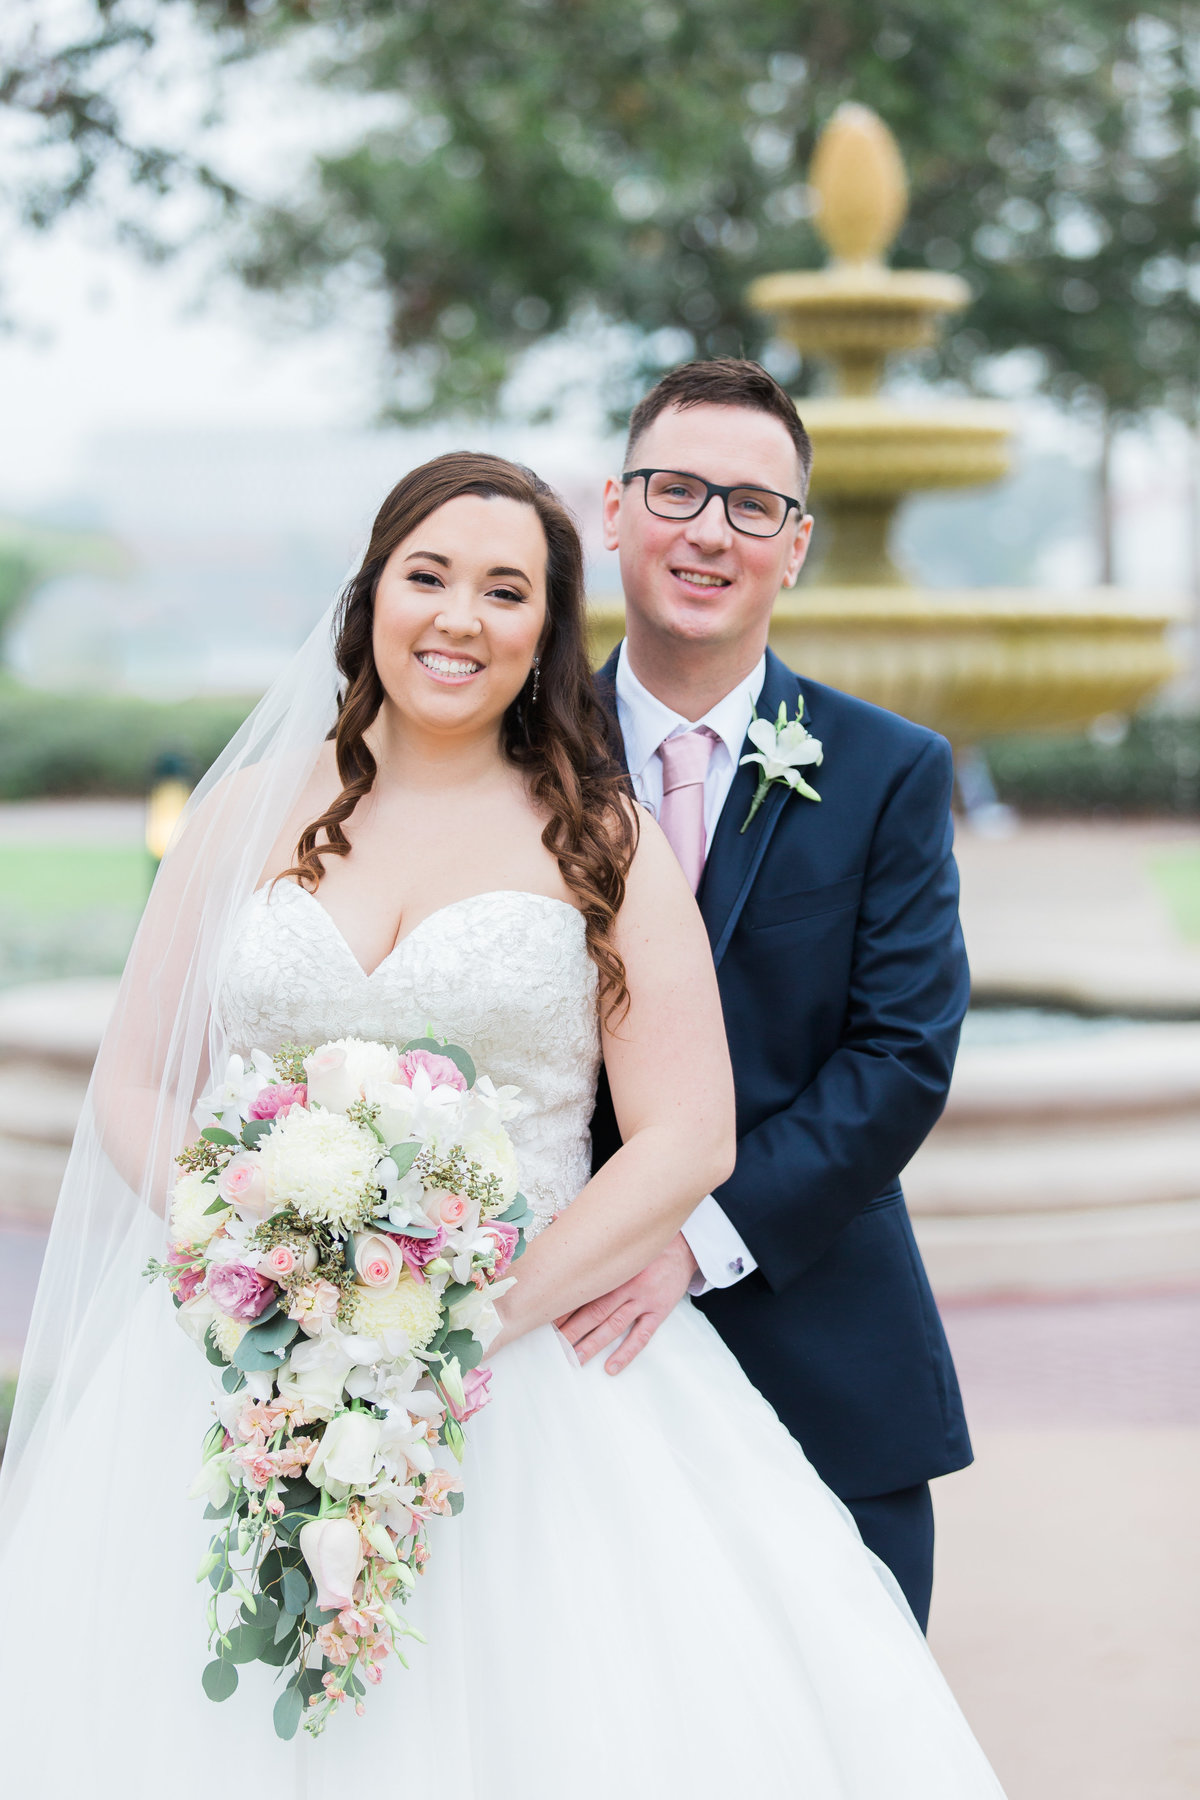 Jess Collins Photography Our Disney Wedding 2017 (217 of 668)